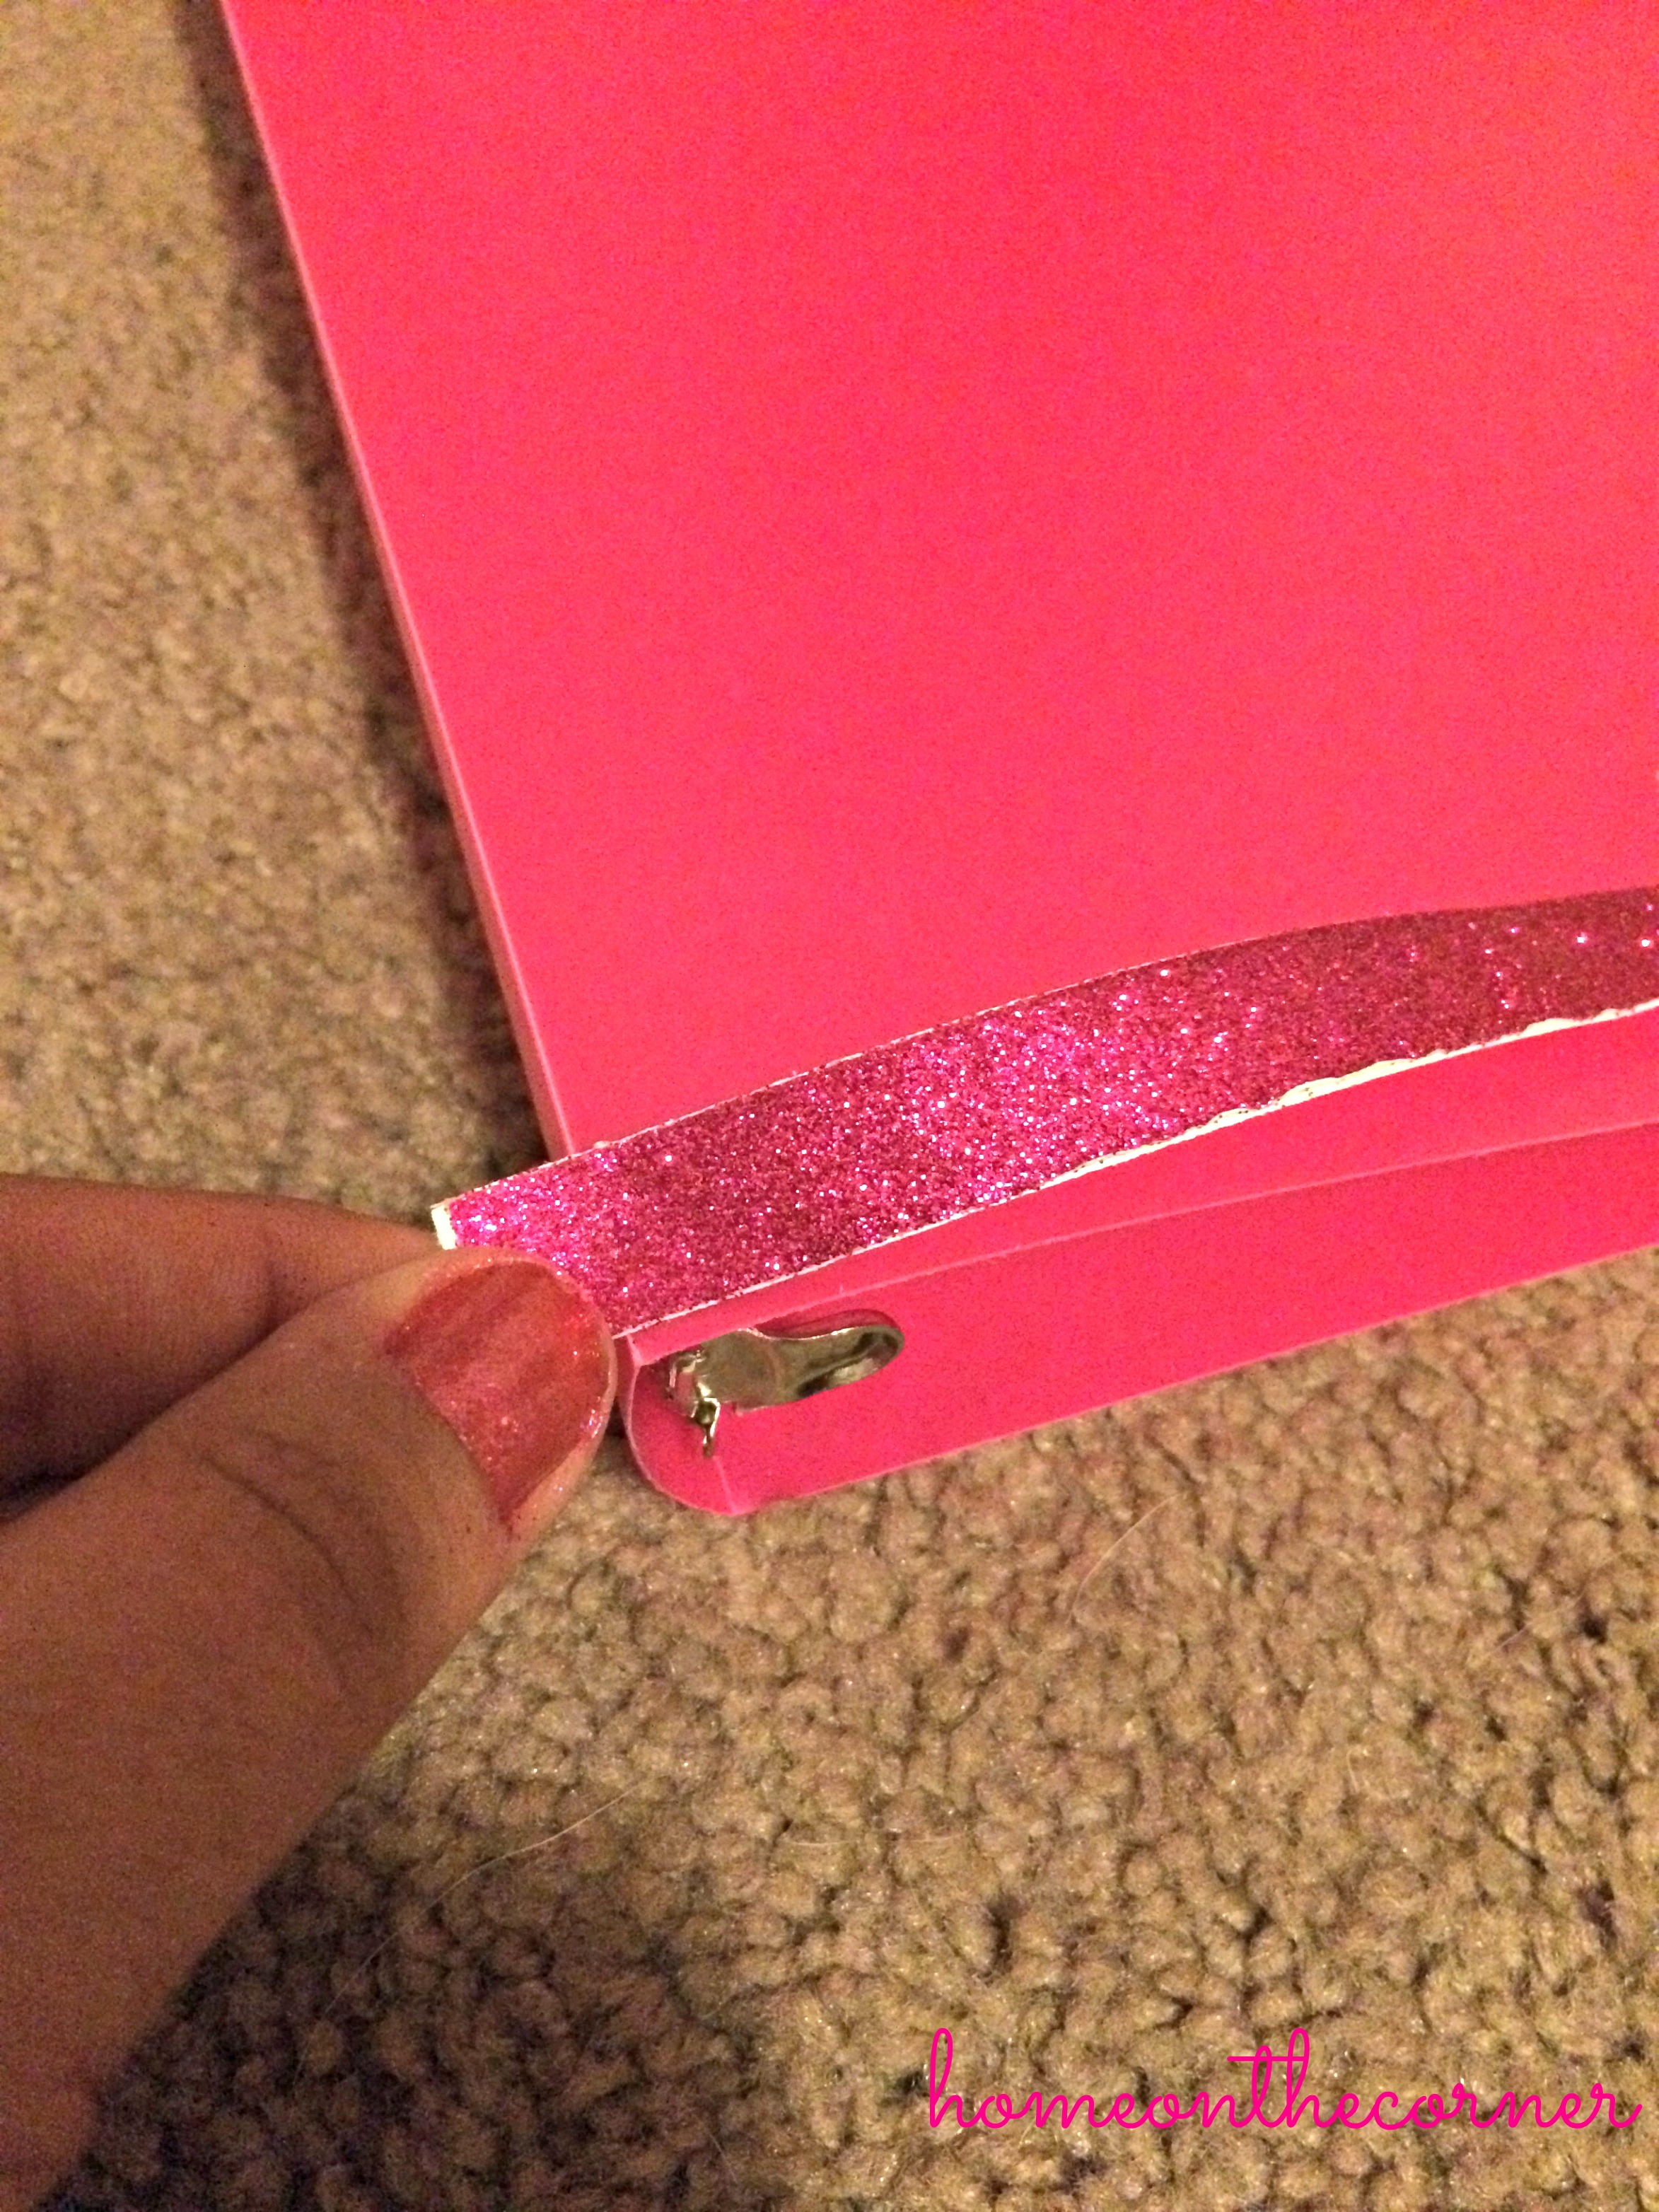 Binder with Tape Before